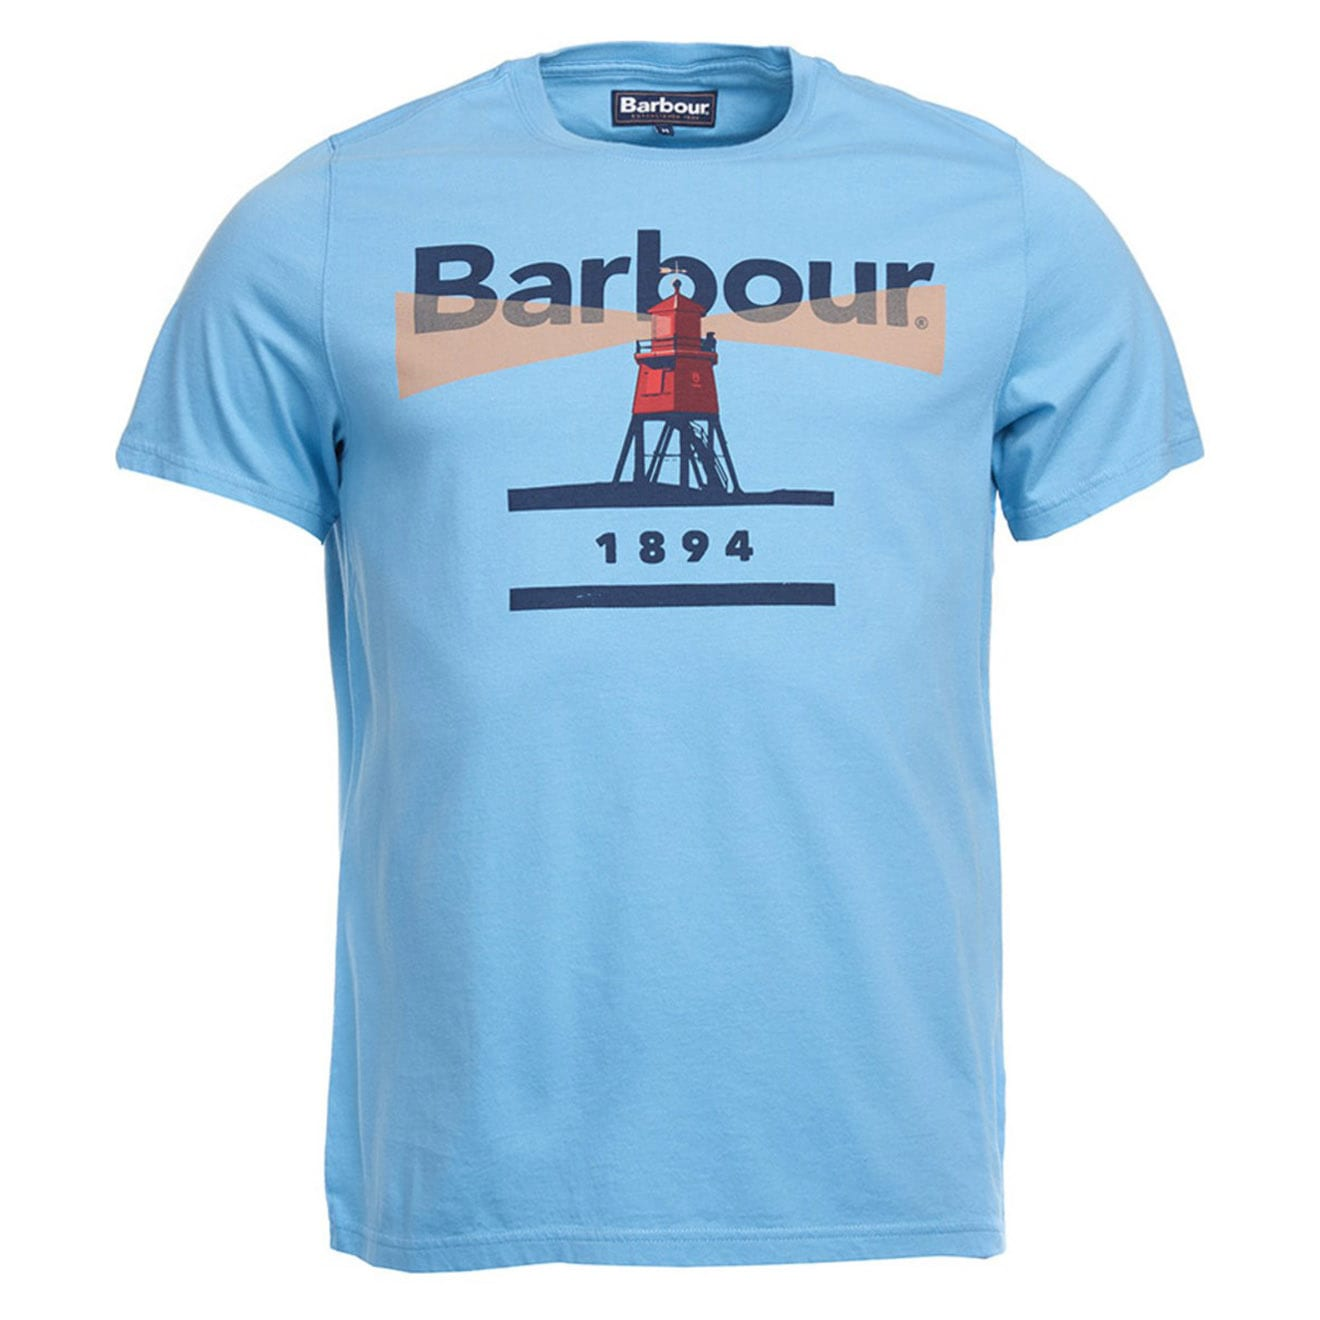 ea4f7f5216c Barbour Beacon 94 T-Shirt Blue - The Sporting Lodge